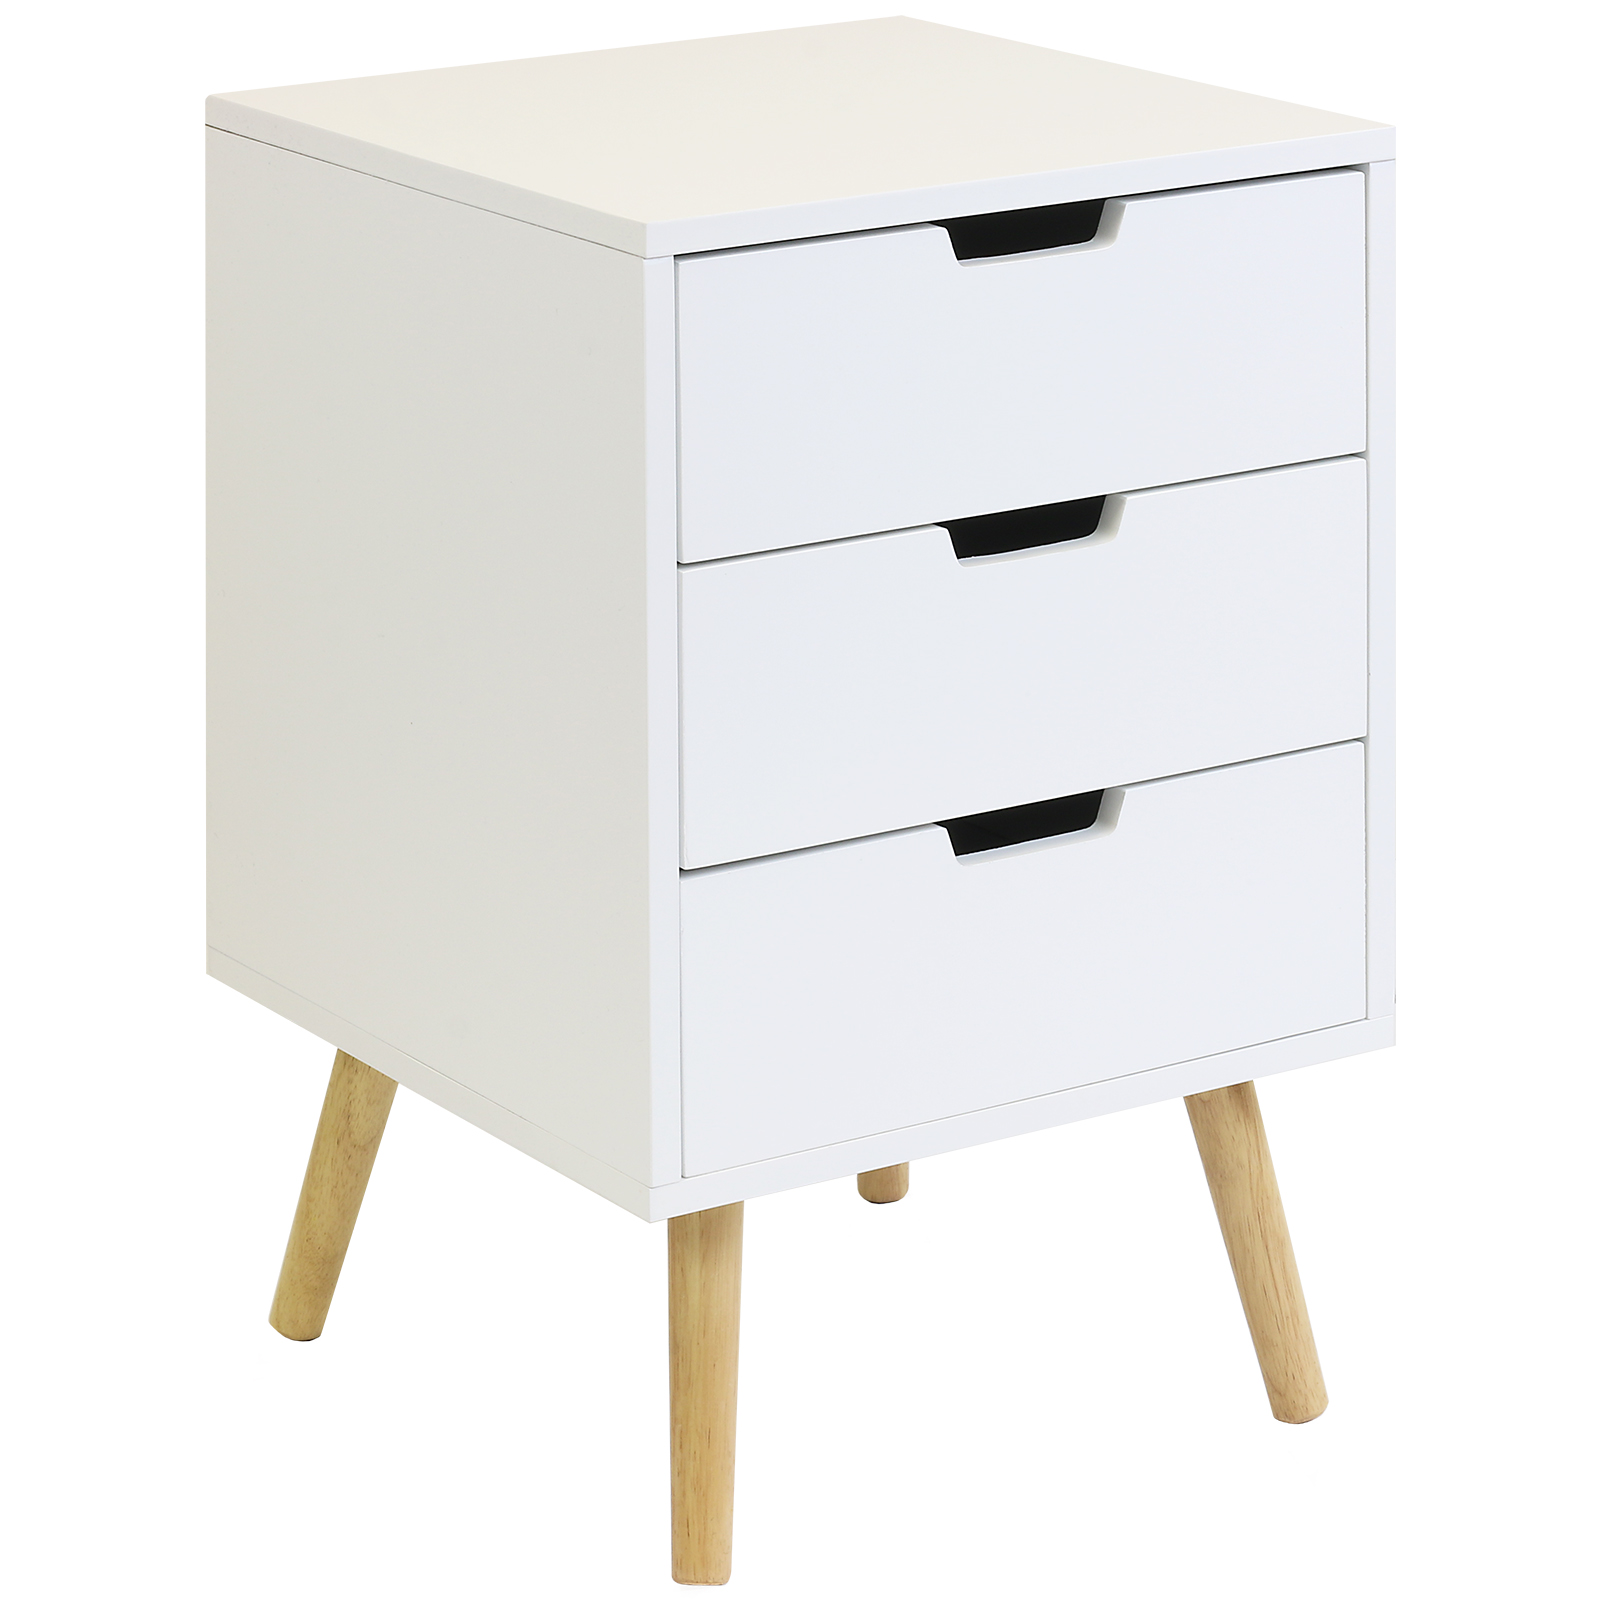 hartleys 3 drawer white bedside table wood legs. Black Bedroom Furniture Sets. Home Design Ideas